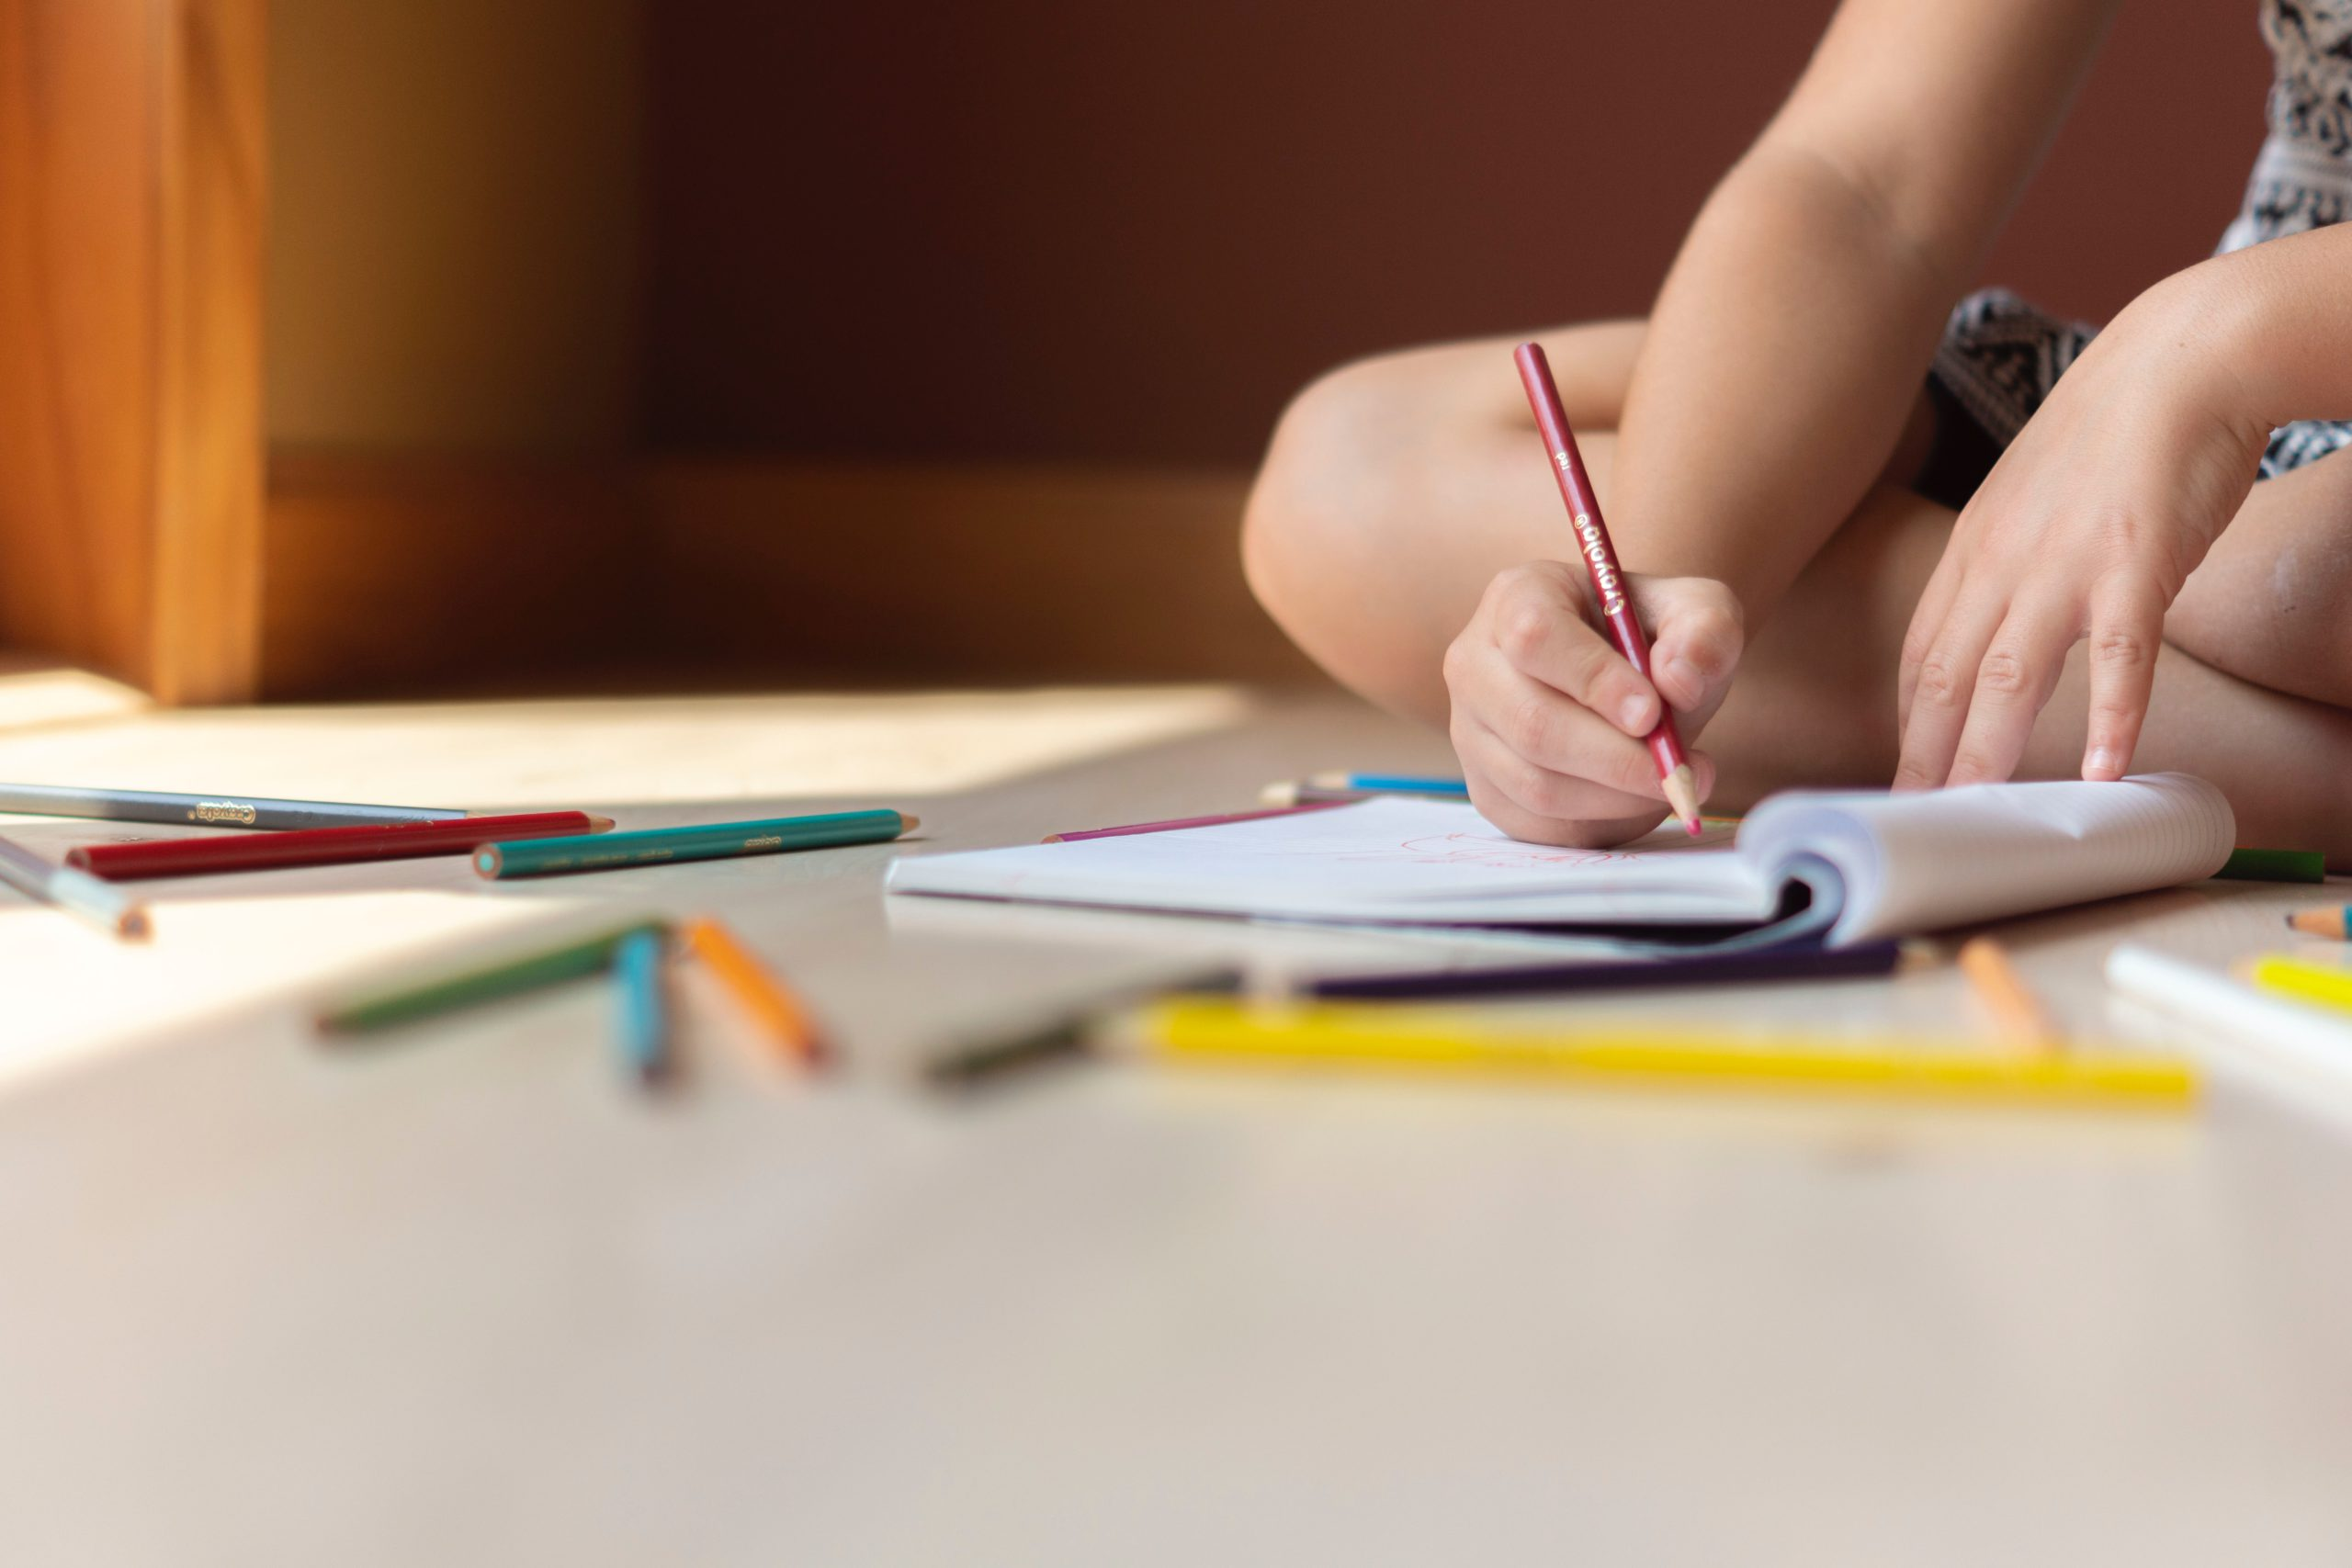 3 Positive Ways To Keep Children Engaged When Working From Home